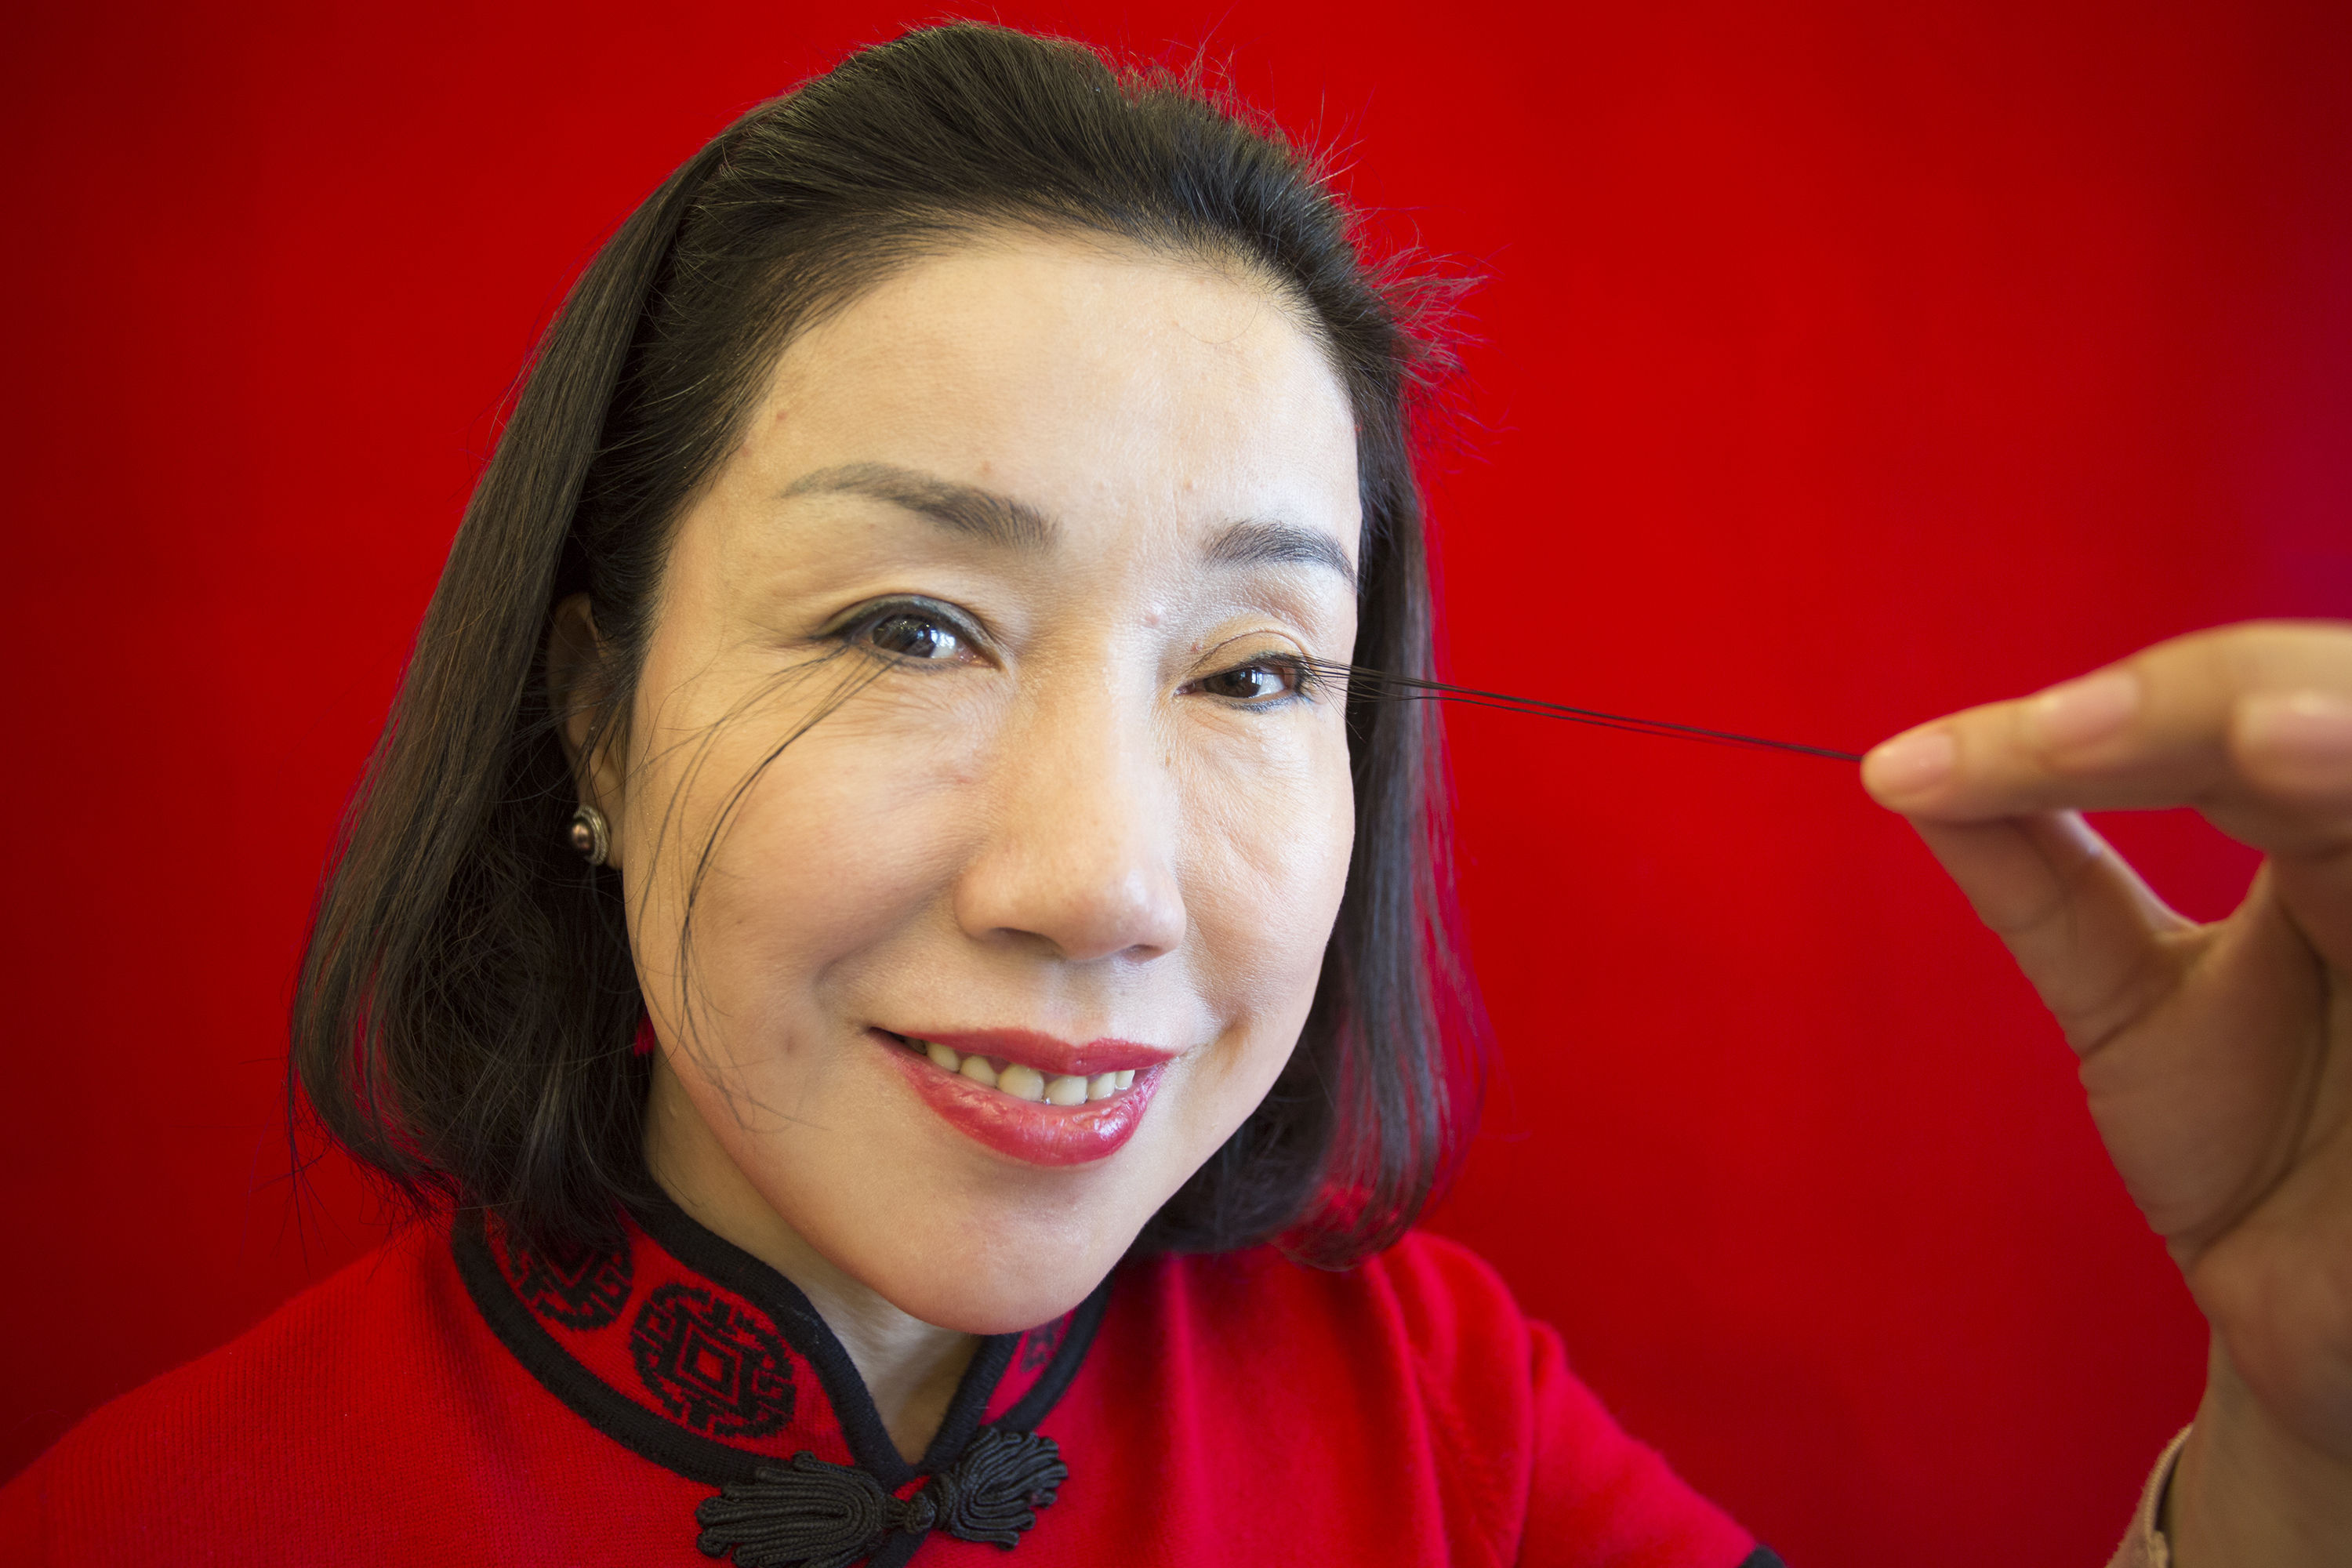 Woman With World's Longest Fingernails Demonstrates How She Does Her Chores